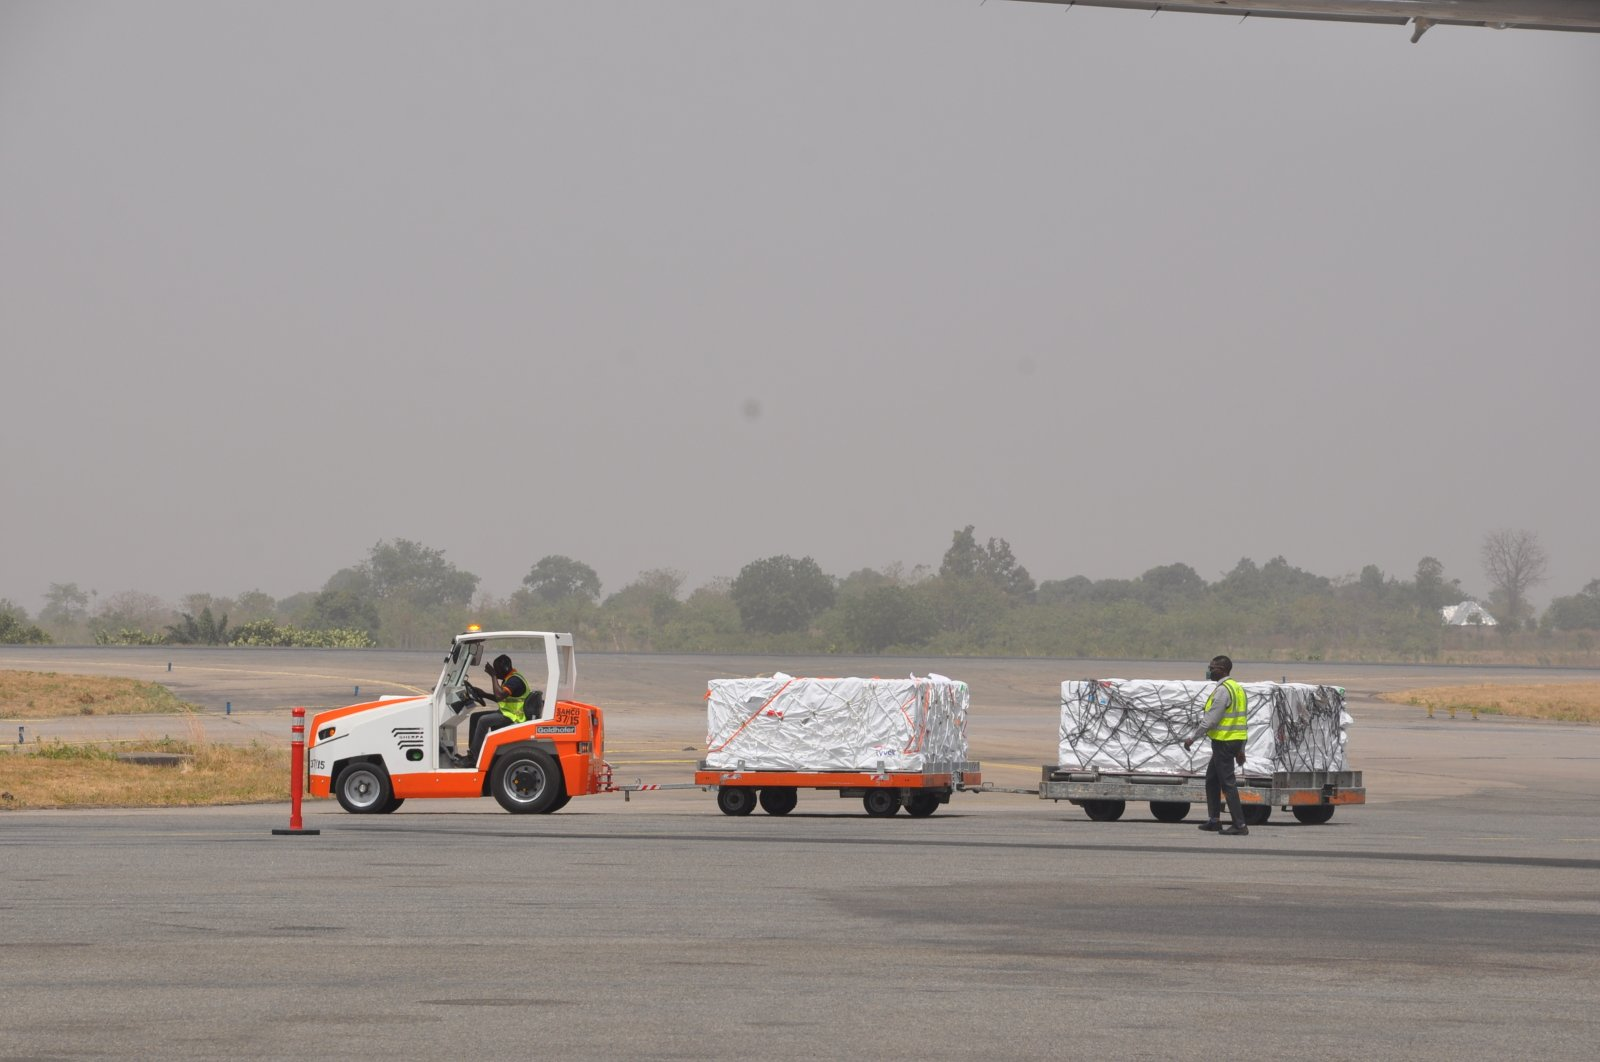 COVID-19 vaccines are offloaded from a plane at Lagos airport, Tuesday March 2, 2021. (AP Photo)